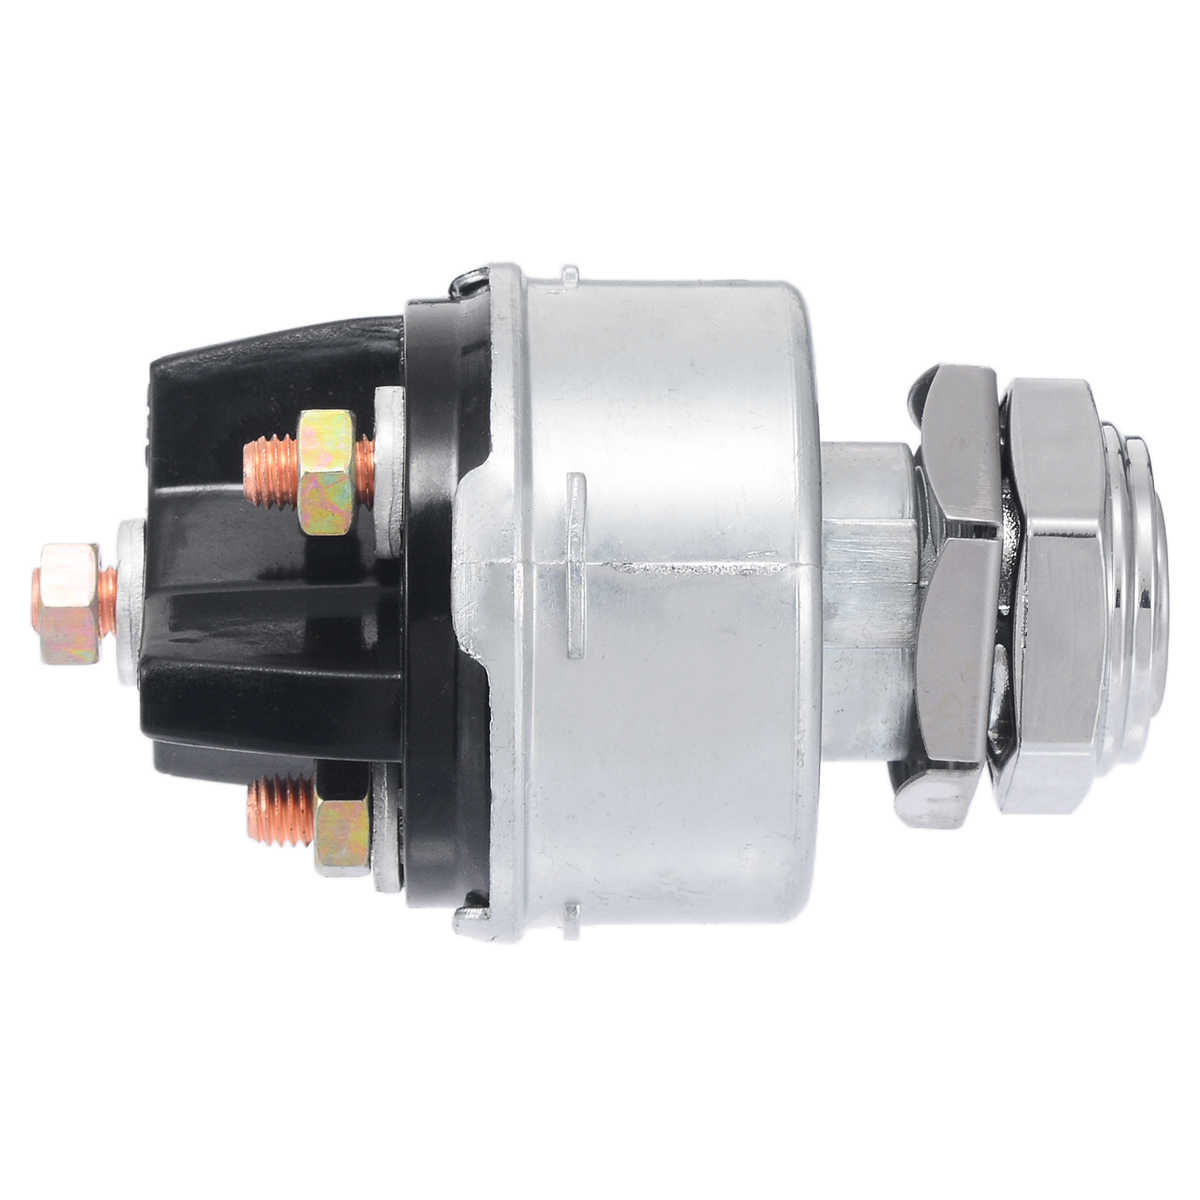 Key Switch for Motor Vehicle Boat Boat Ignition Switch Control SPB501 with 2 Keys 3 Positions Ignition Key Switch 12V Auto Universal Ignition Key Switch